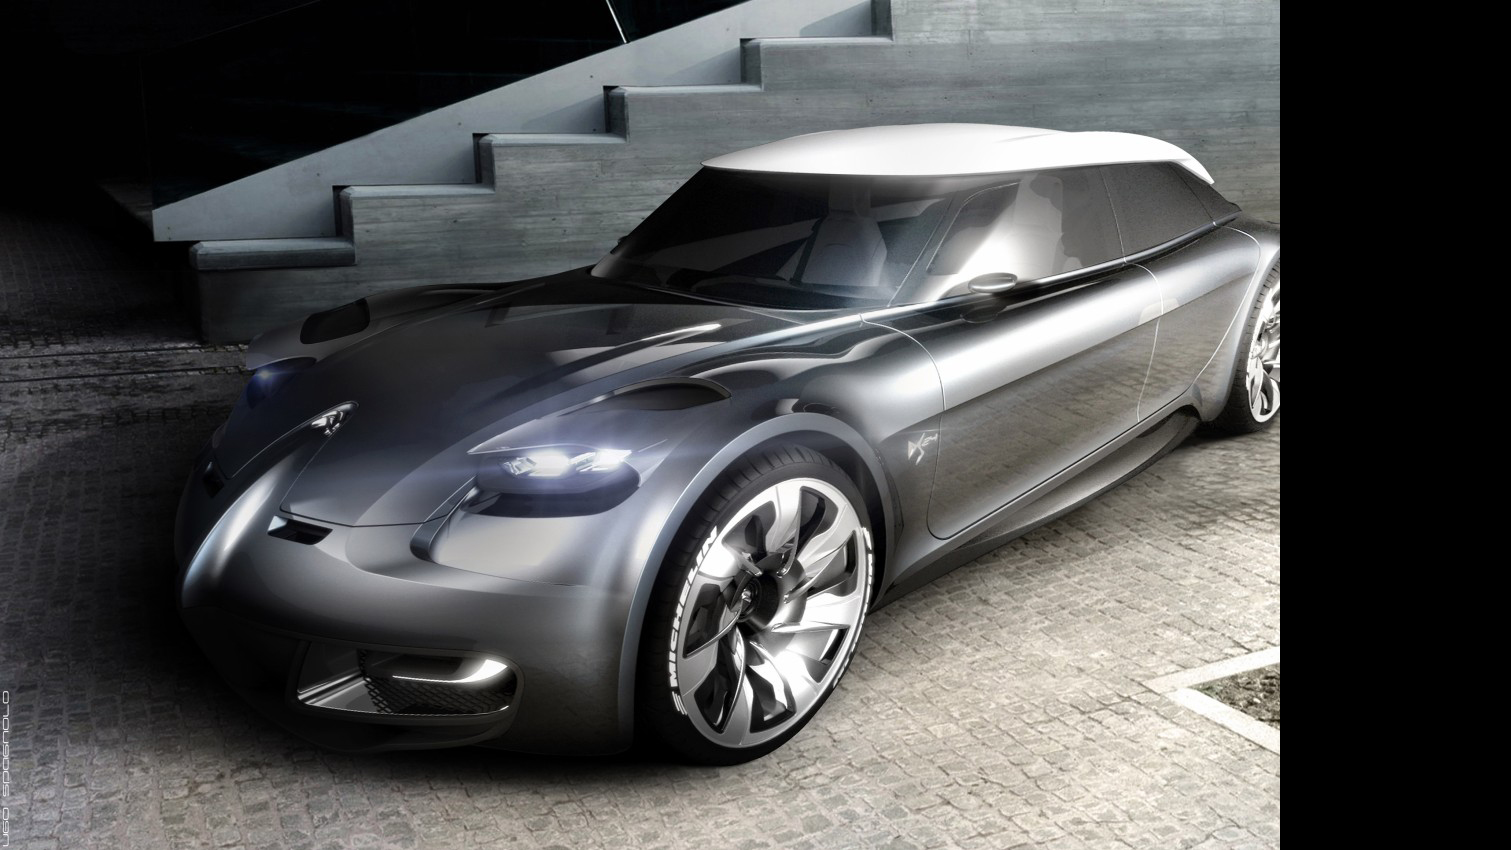 Student Creates Stunning Citroen Ds Design For The Year